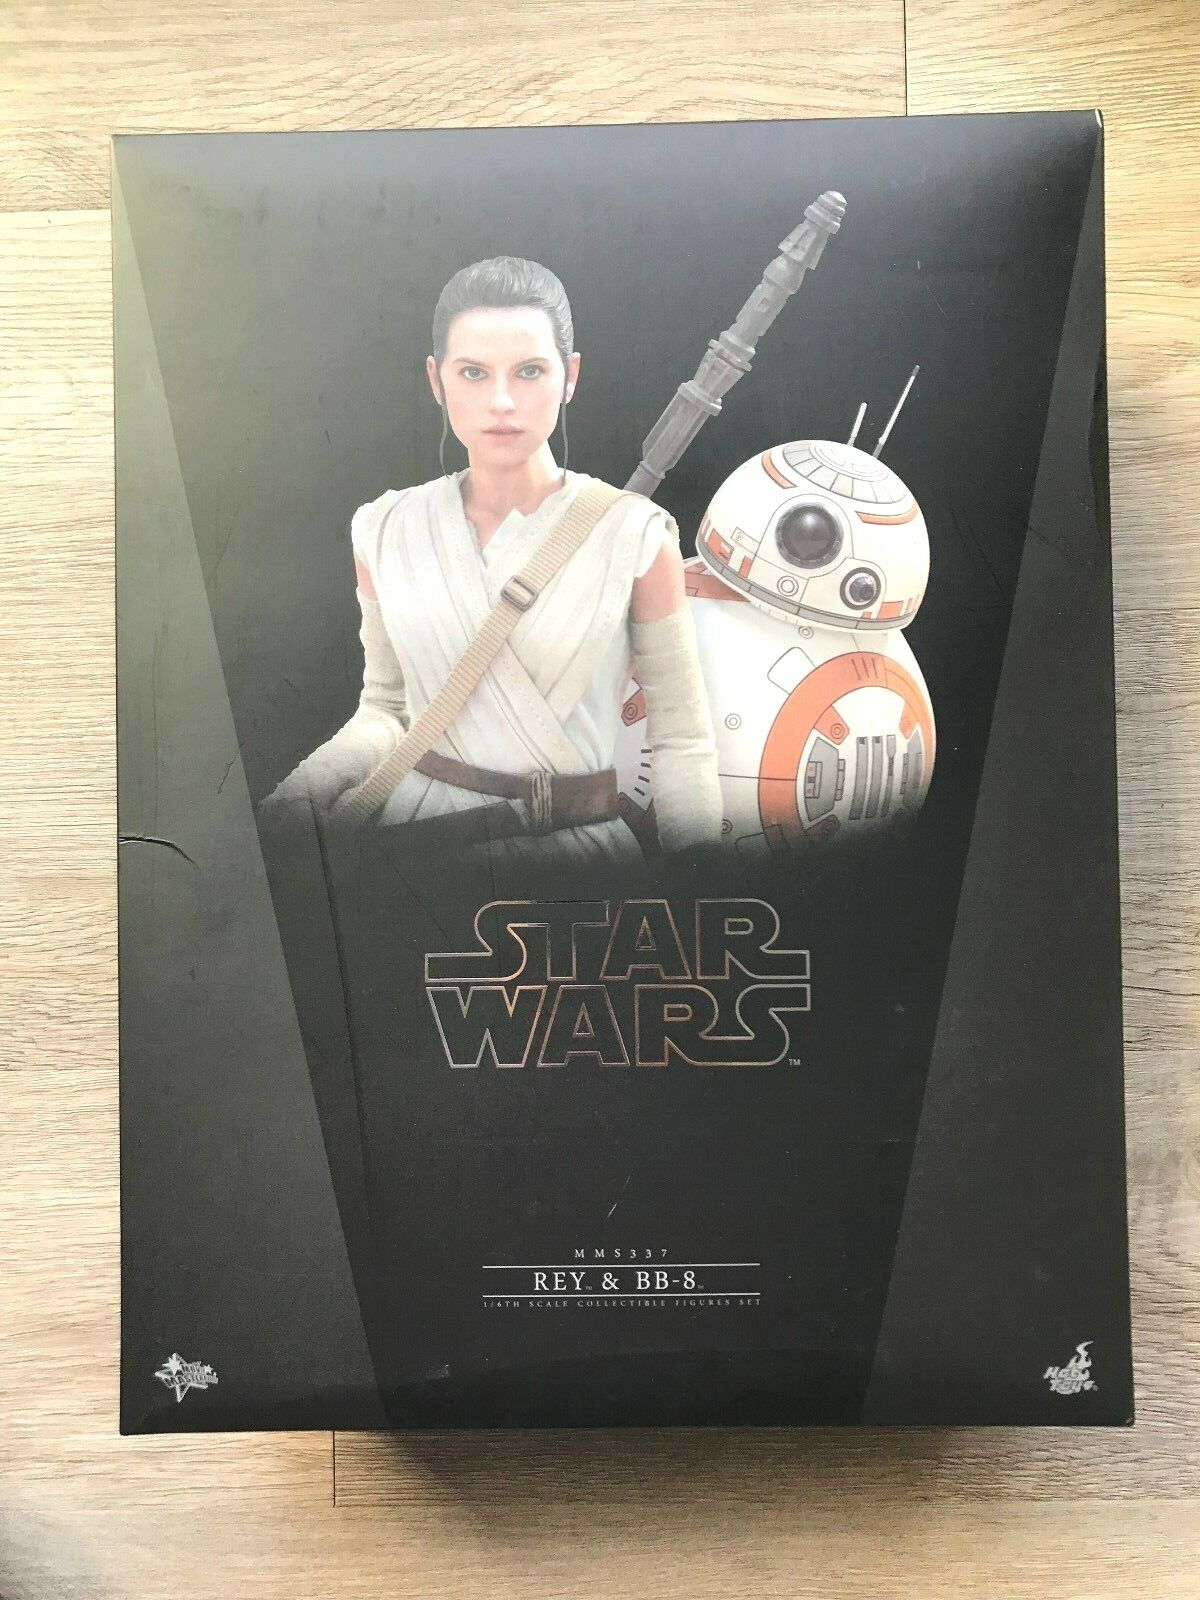 Hot Toys Movie Masterpiece 1 6 6 6 Scale Star Wars The Force Awakens - Rey & BB-8 4f3c08